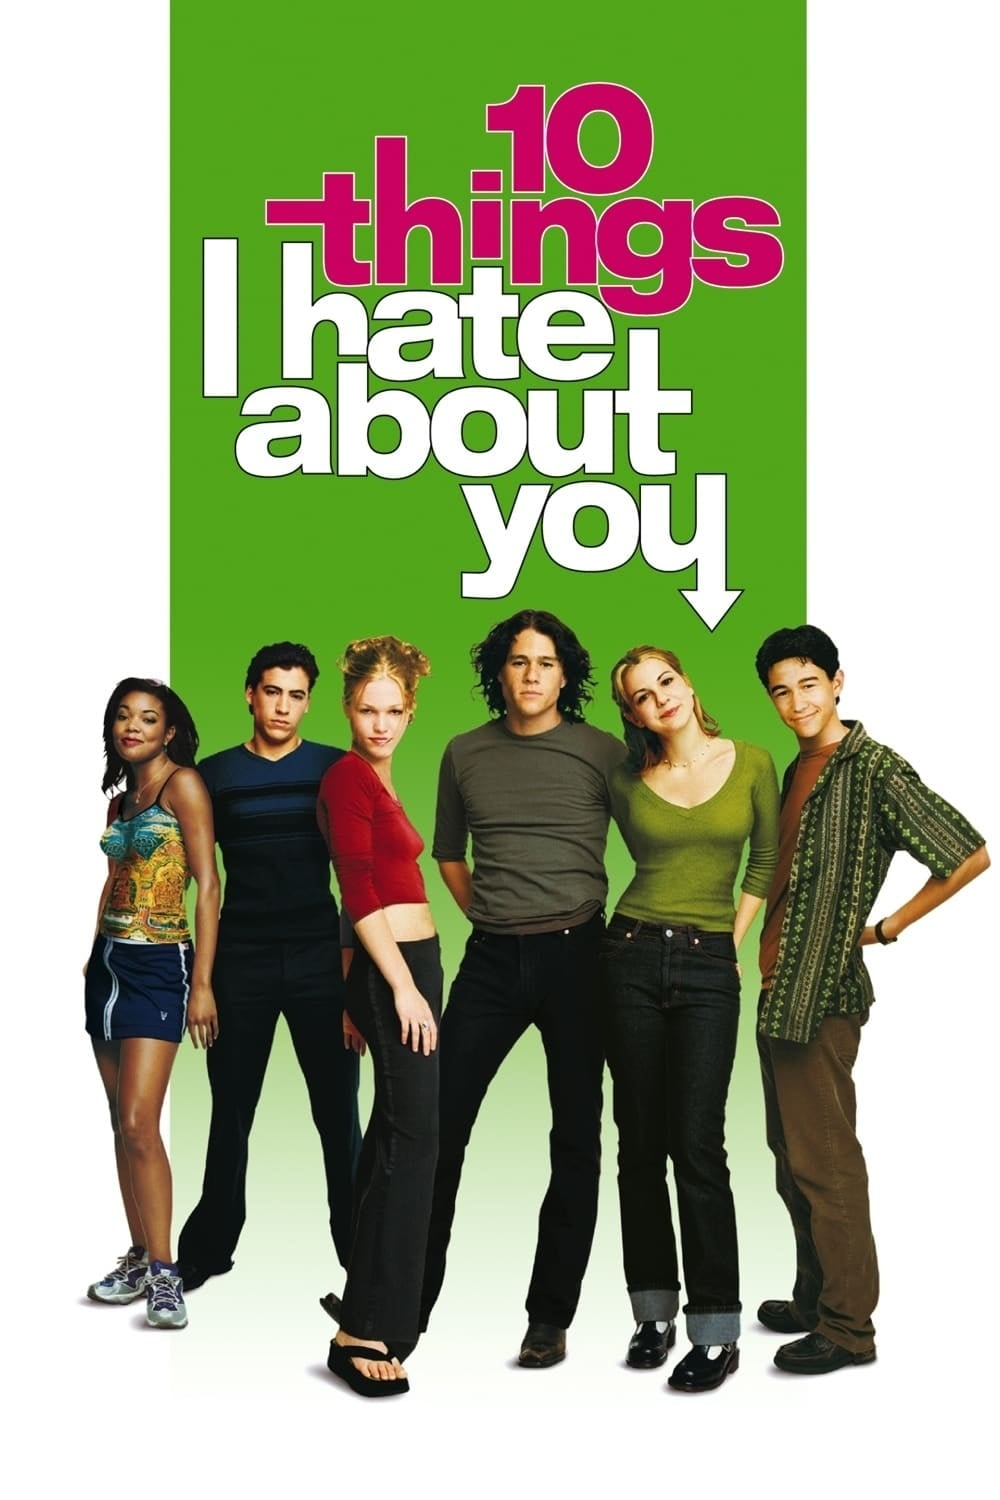 download or watch 10 Things I Hate About You full movie online free Openload